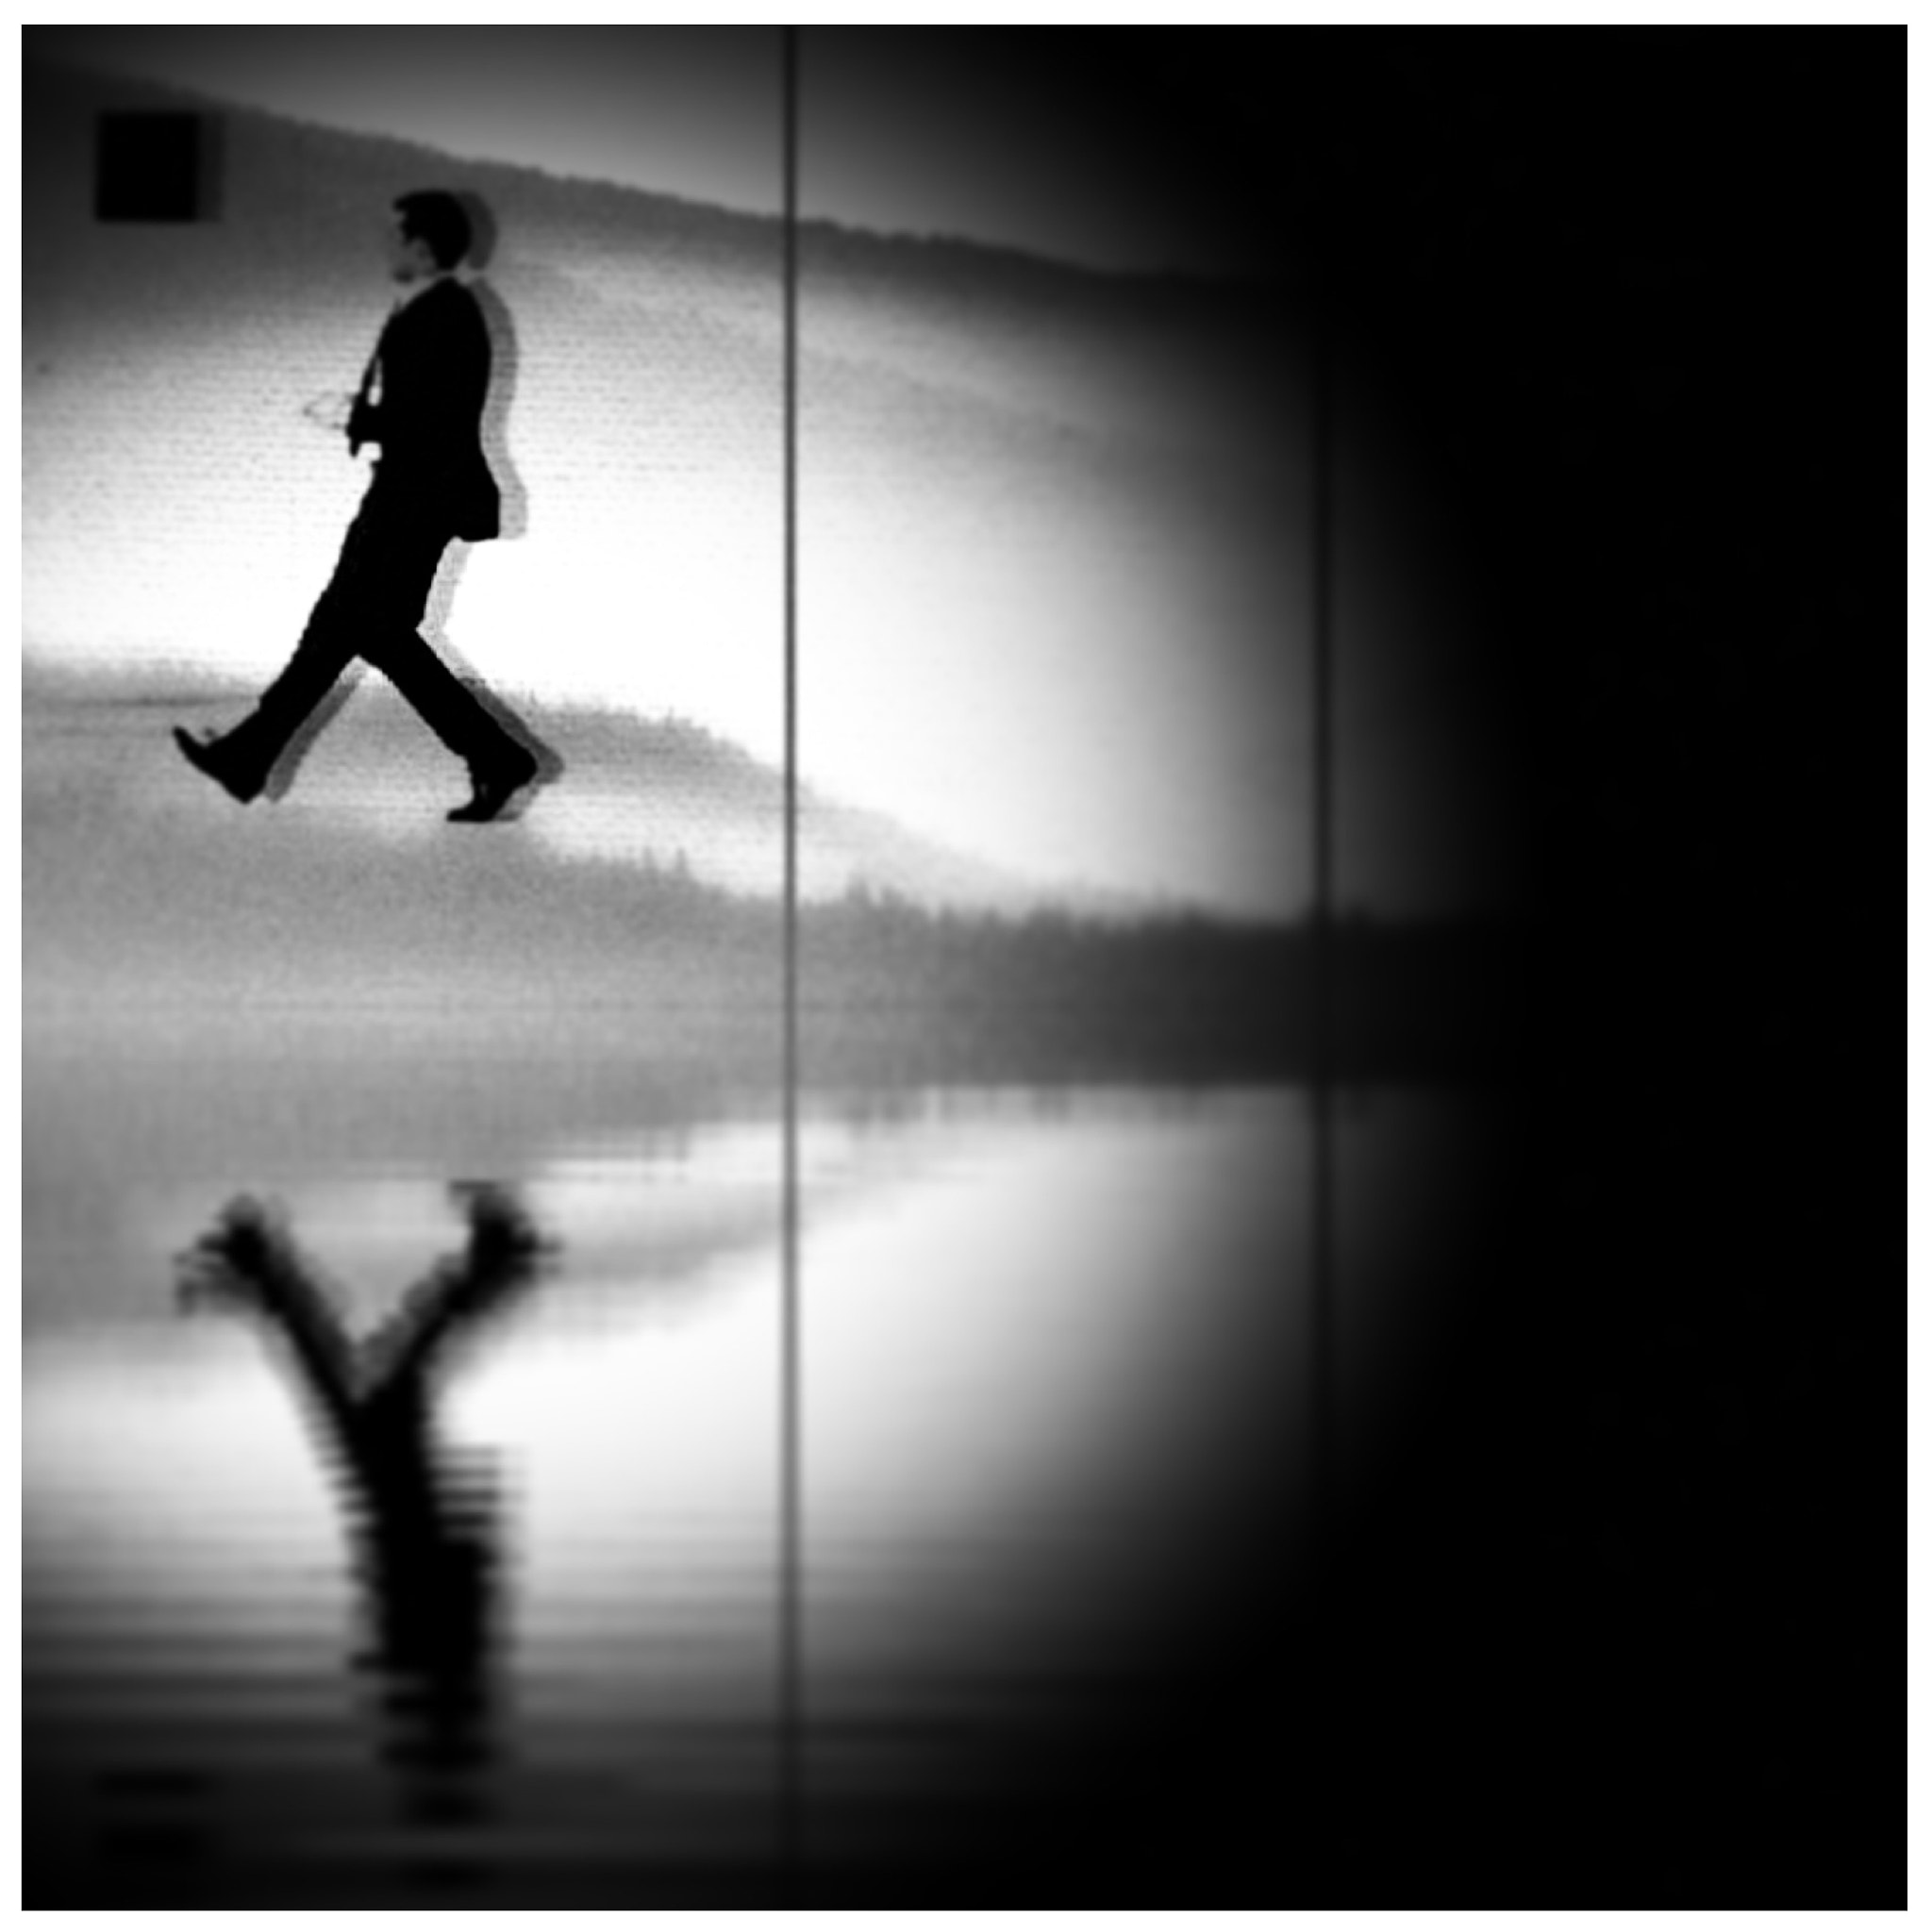 Photograph Man on the run  by lydia davison whitcomb on 500px